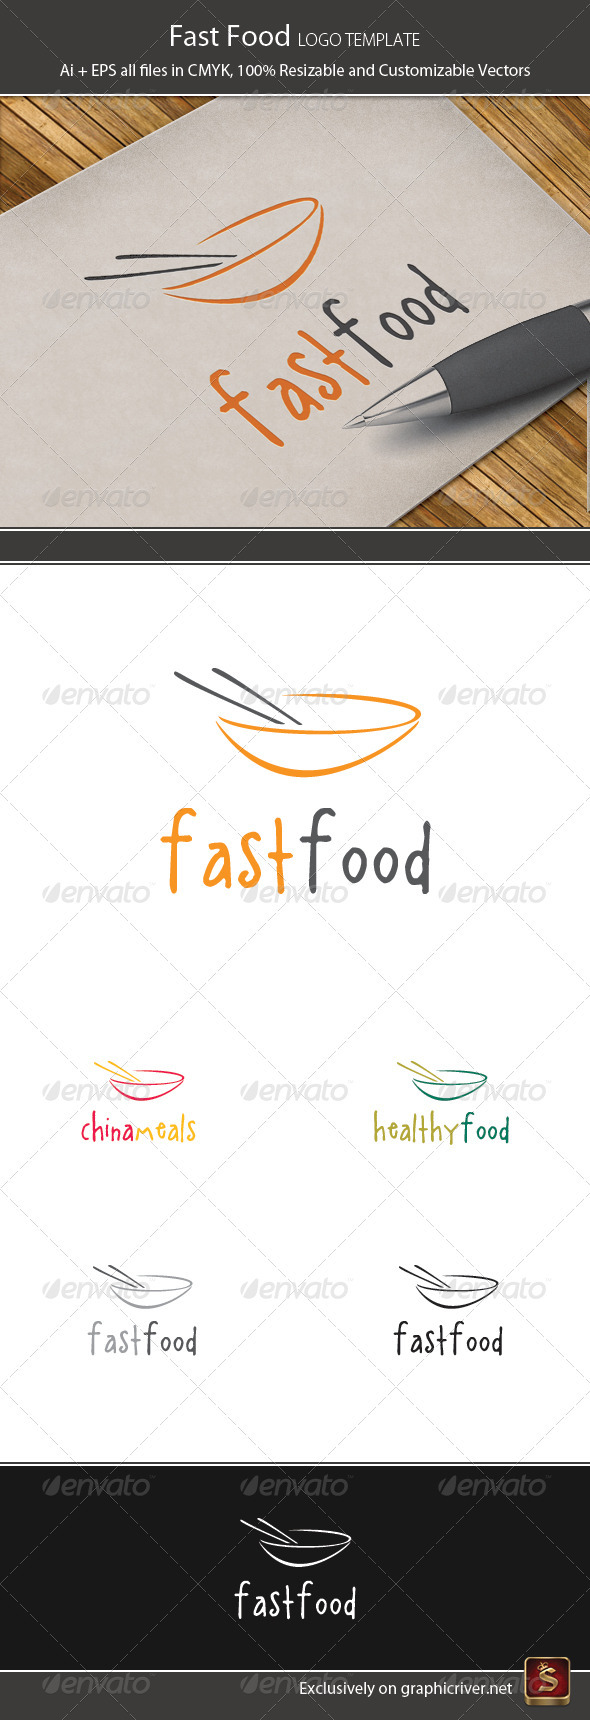 Fast Food Logo Template - Food Logo Templates